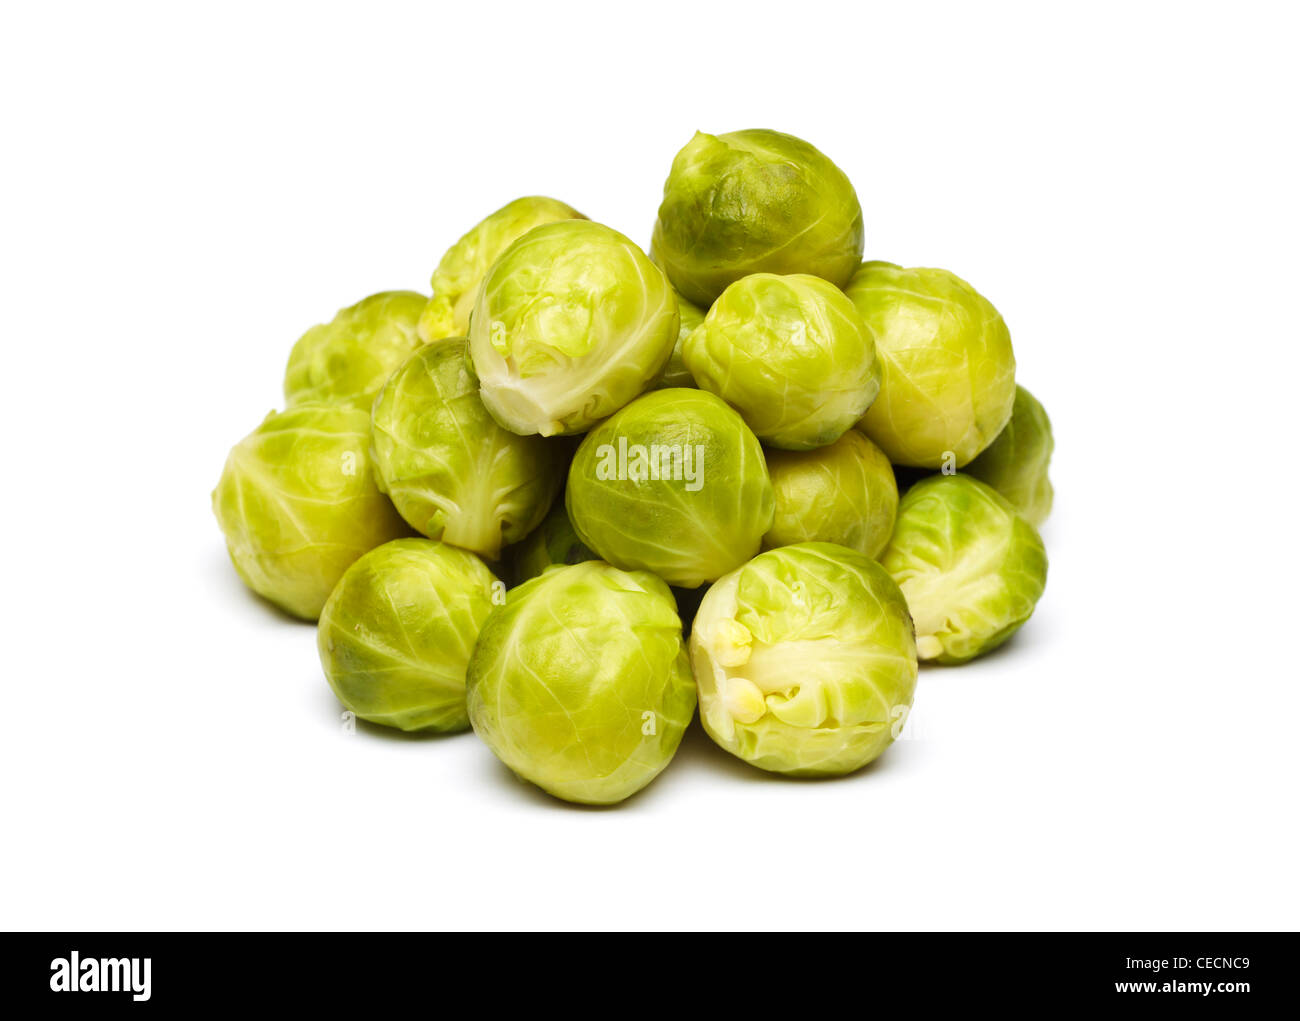 Brussel sprouts cooked on white background - Stock Image